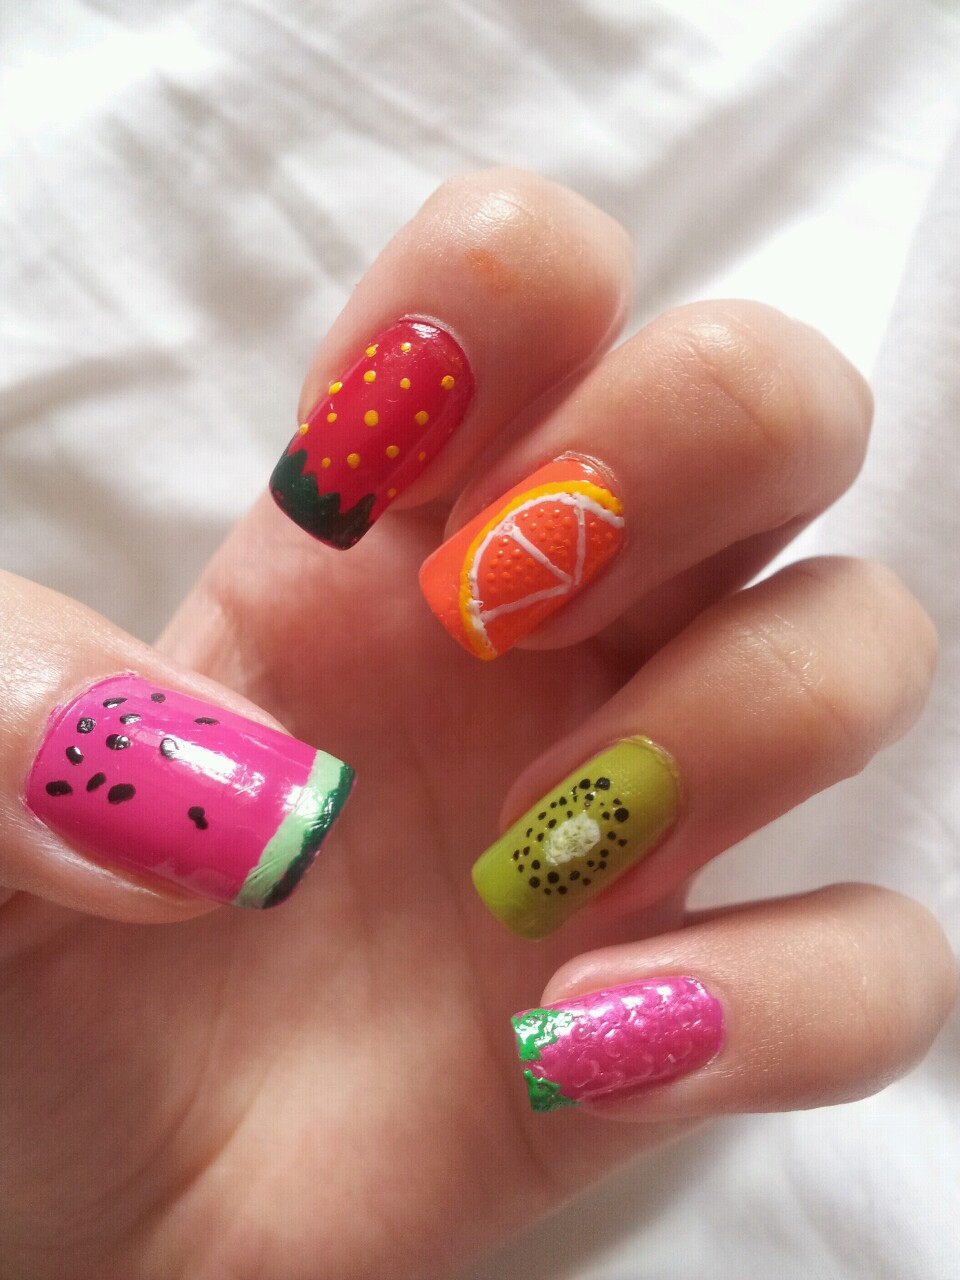 Nail Art Design 2014: Collection of fruit nail art